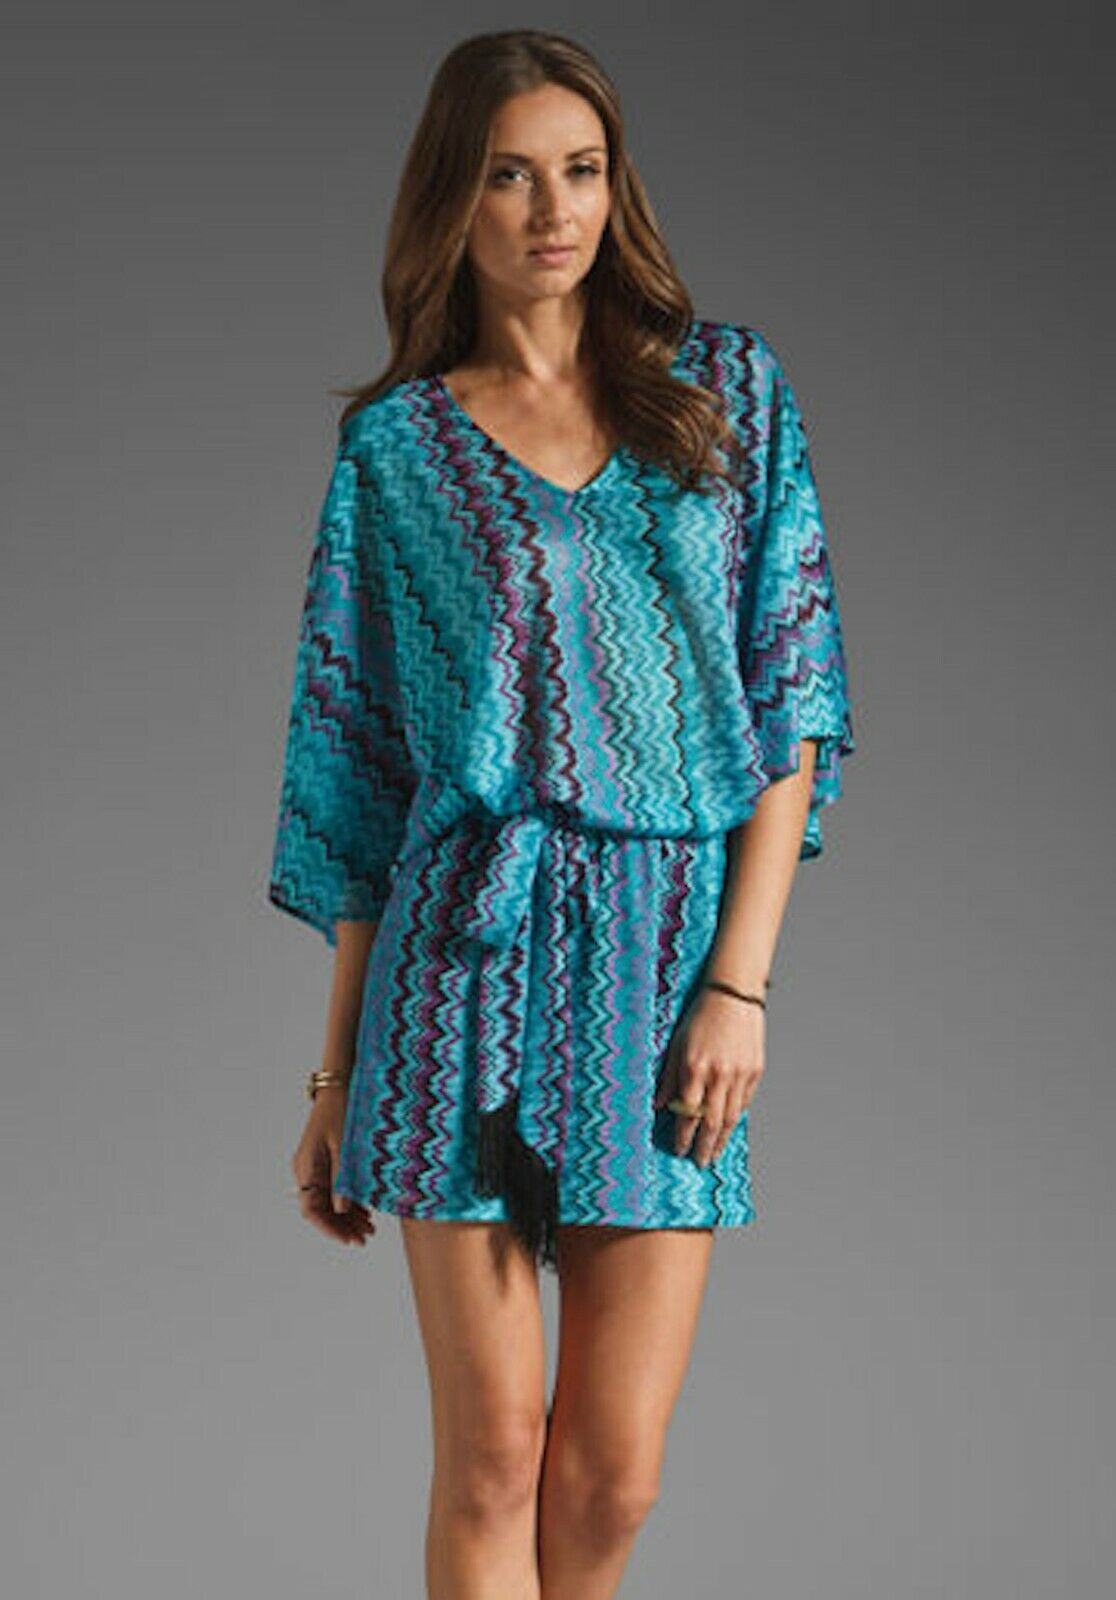 Karina Grimaldi Nicole Knit Mini Dress Teal Zig Zag NEW Short bluee